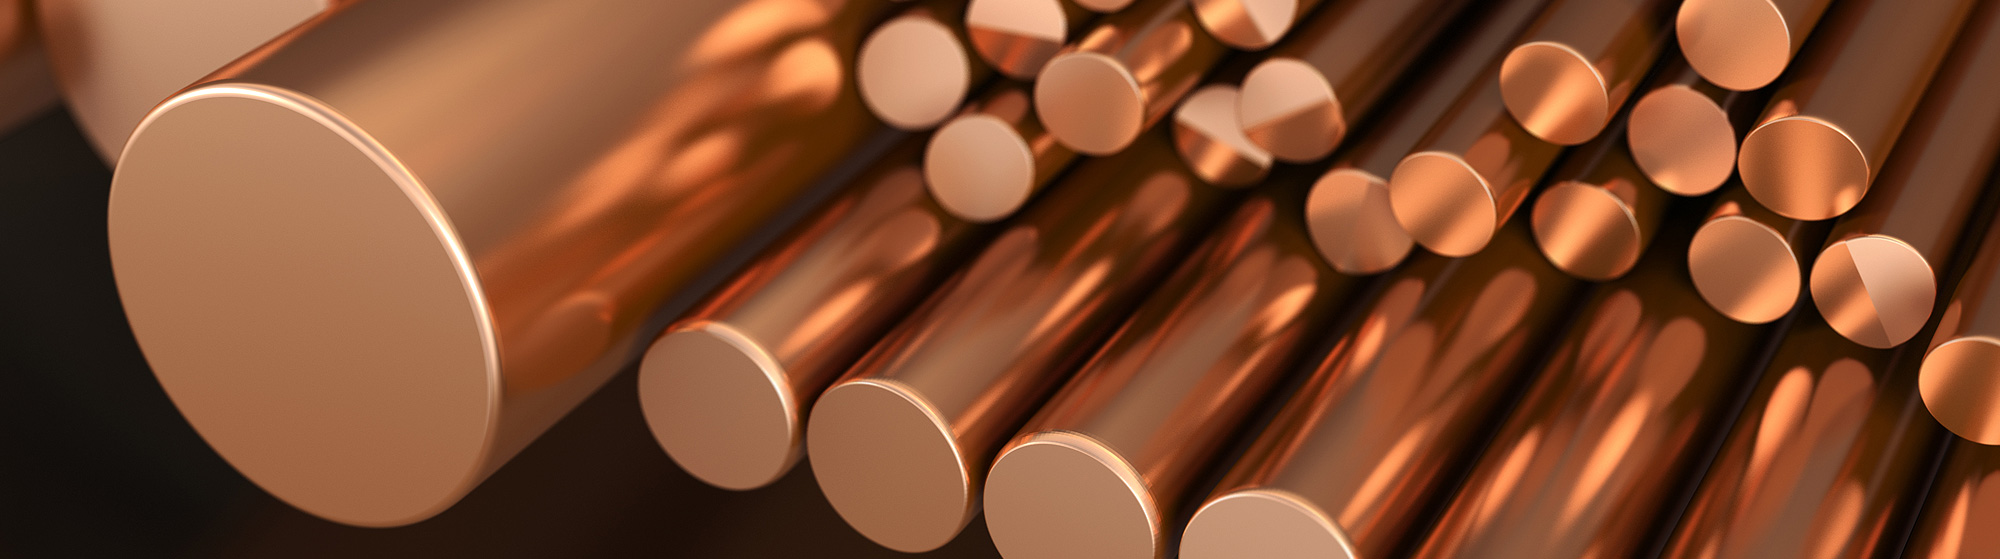 Copper Wave Analysis – 05 September, 2019